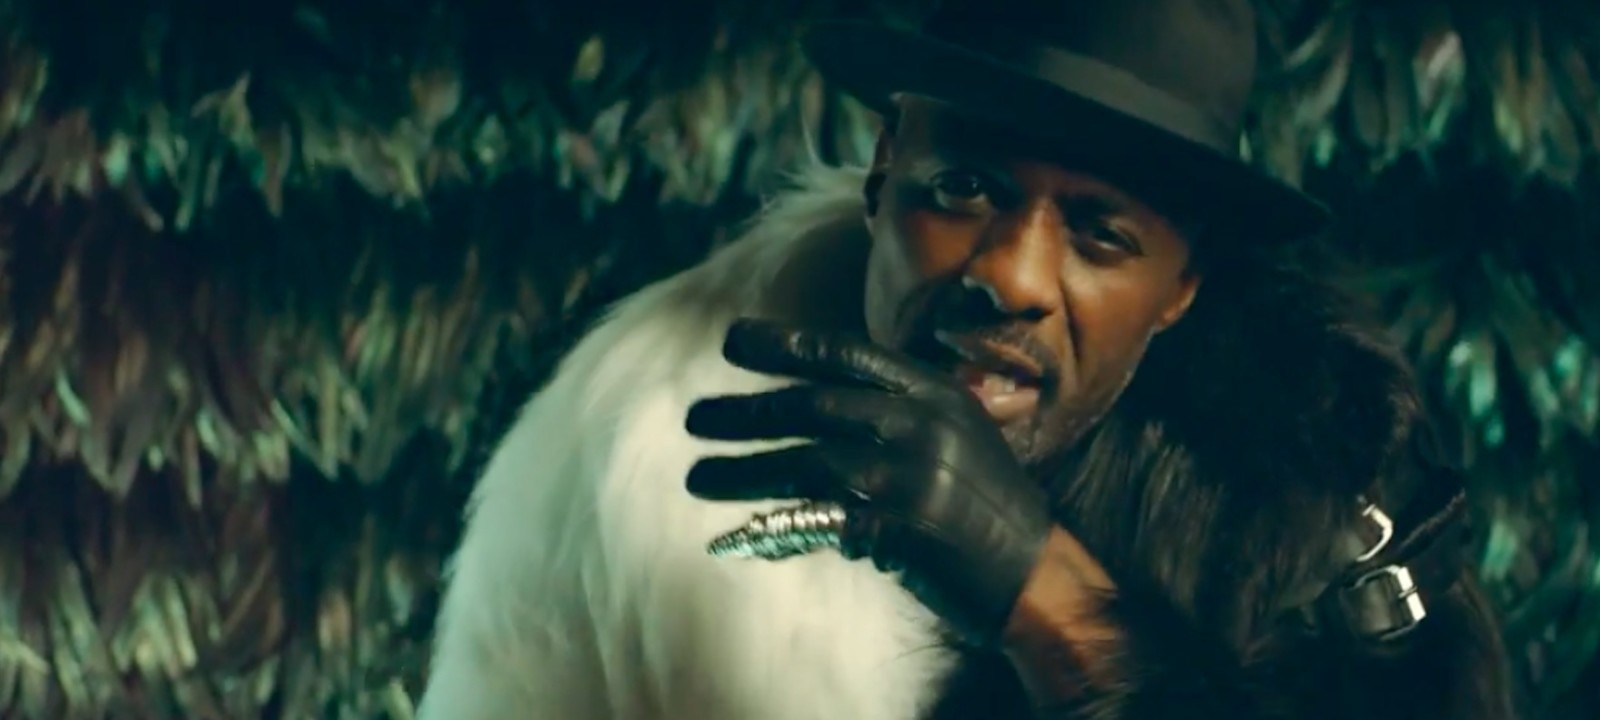 Idris Elba in video for Macklemore's 'Dance Off'